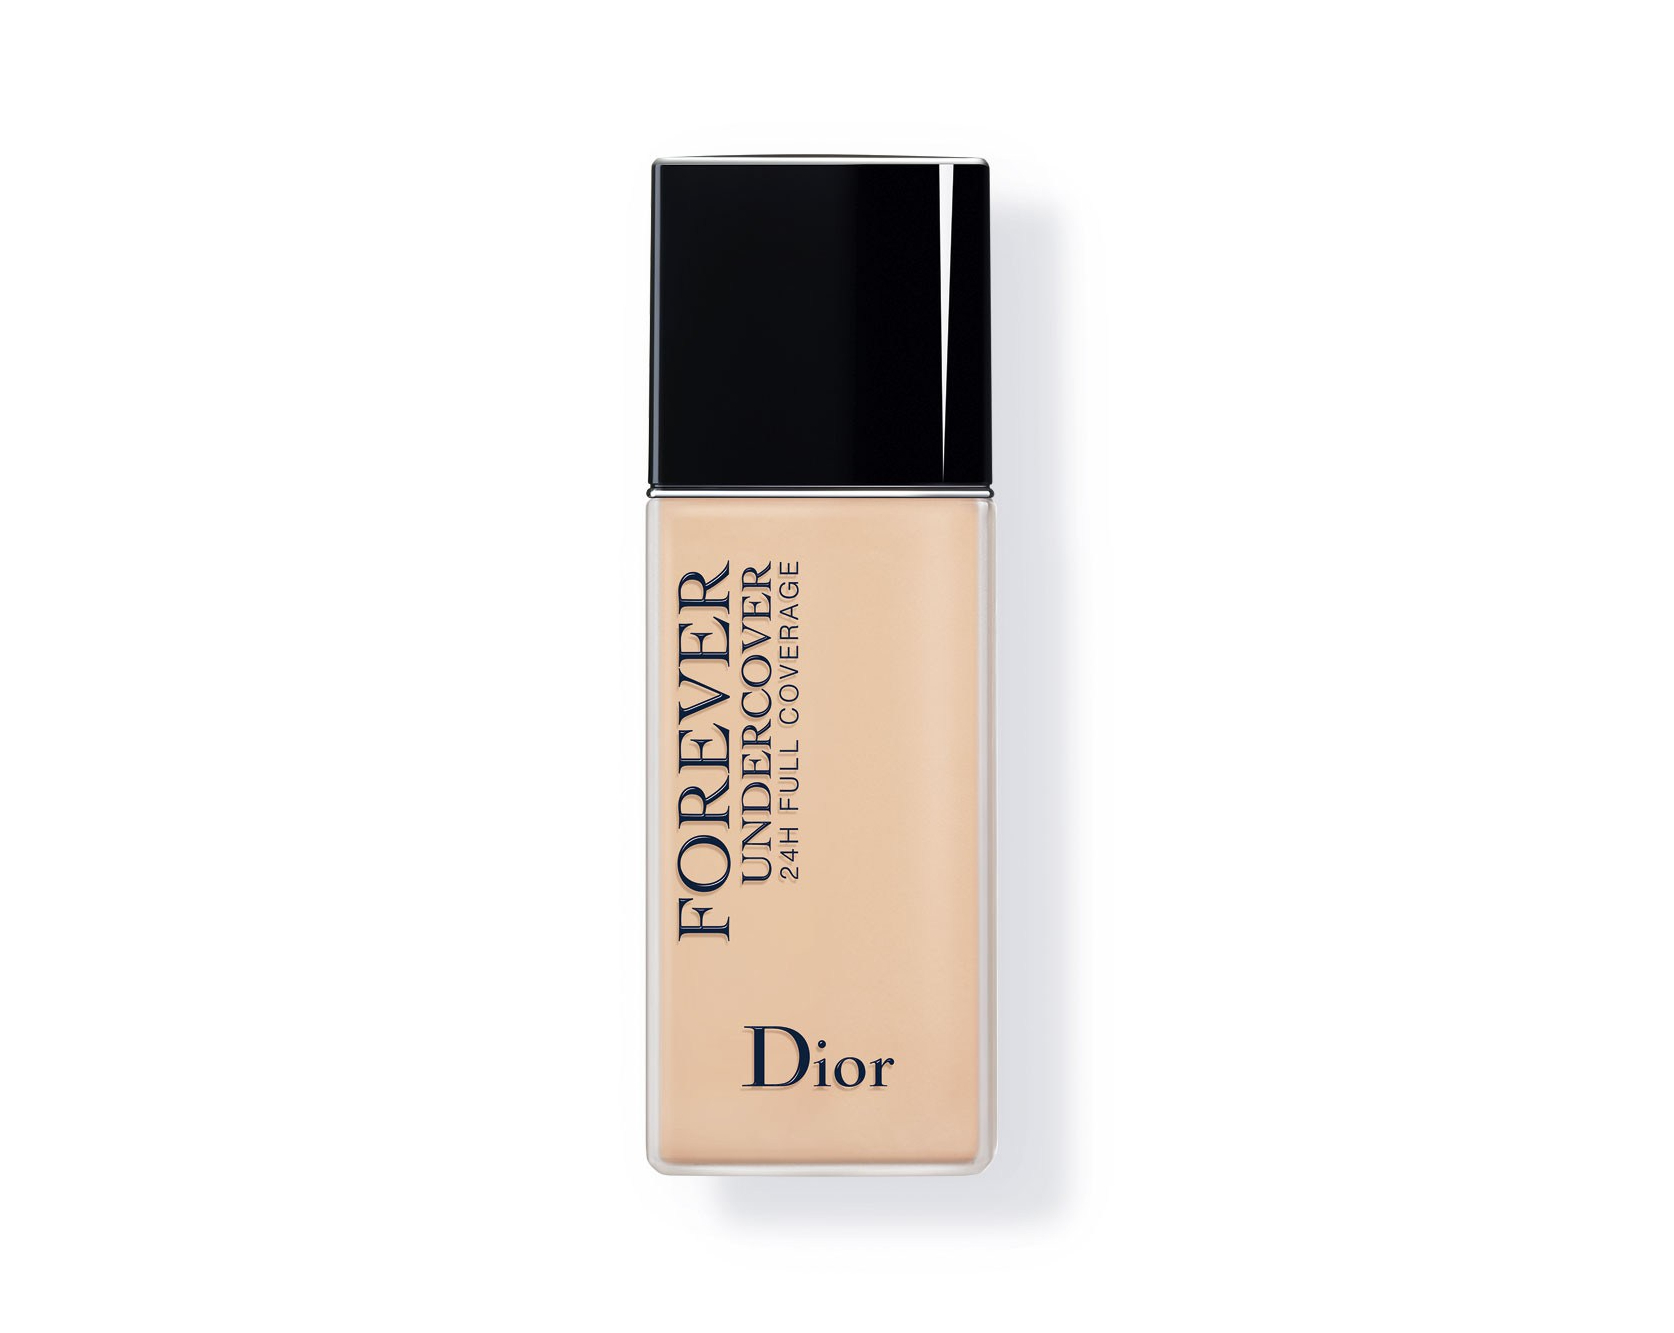 Dior Forever Undercover Foundation Review (1)